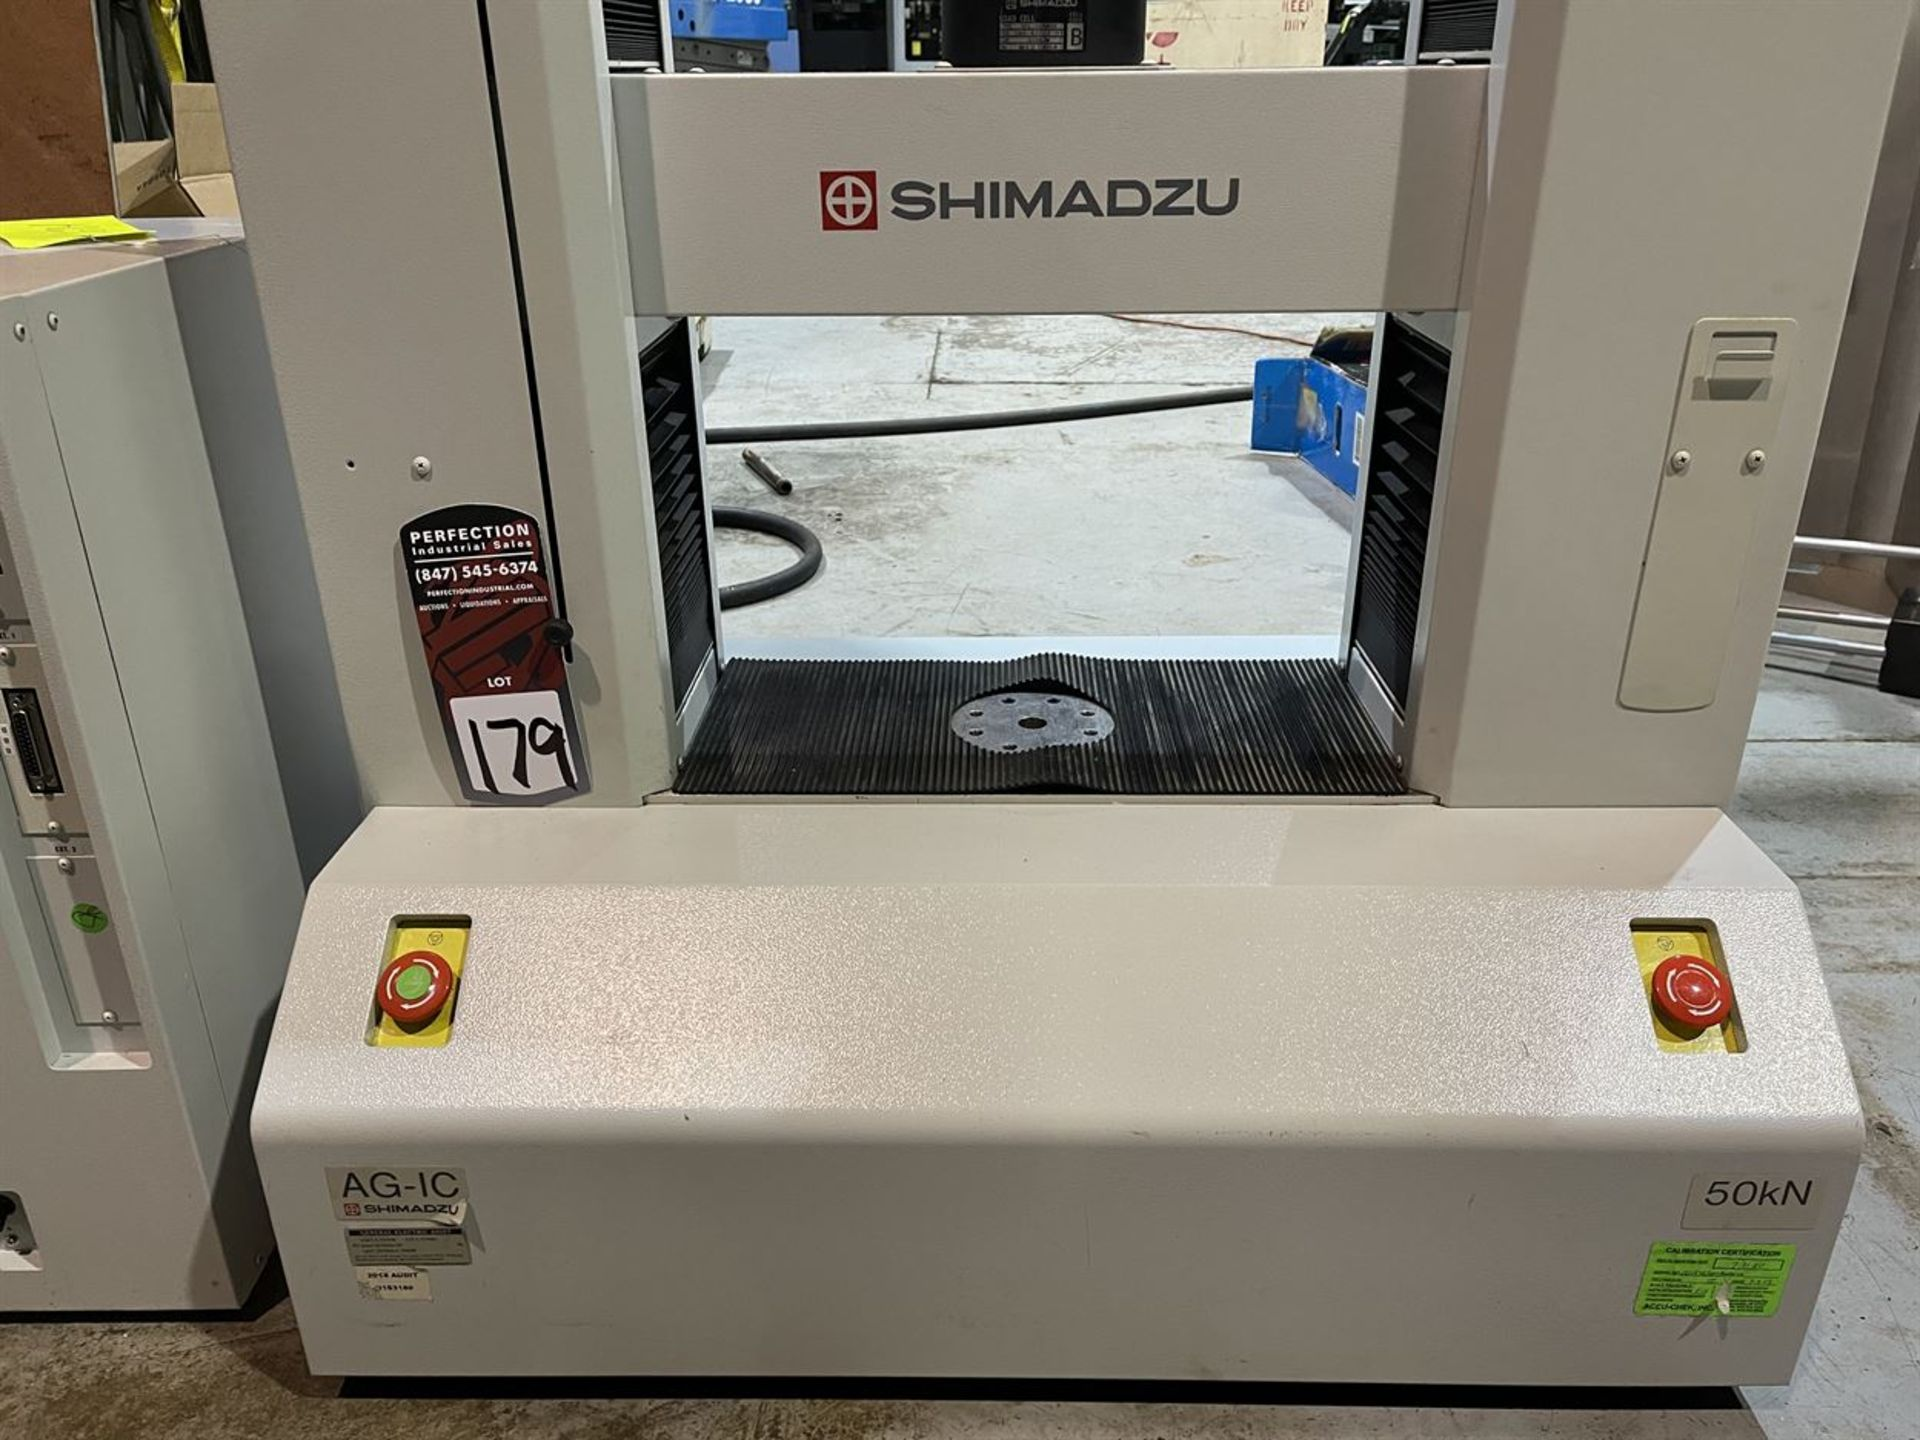 SHIMADZU AG-IC UNIVERSAL / TENSILE STRENGTH TESTER, s/n I30124936053, Autograph AG-IC Control/ - Image 3 of 5